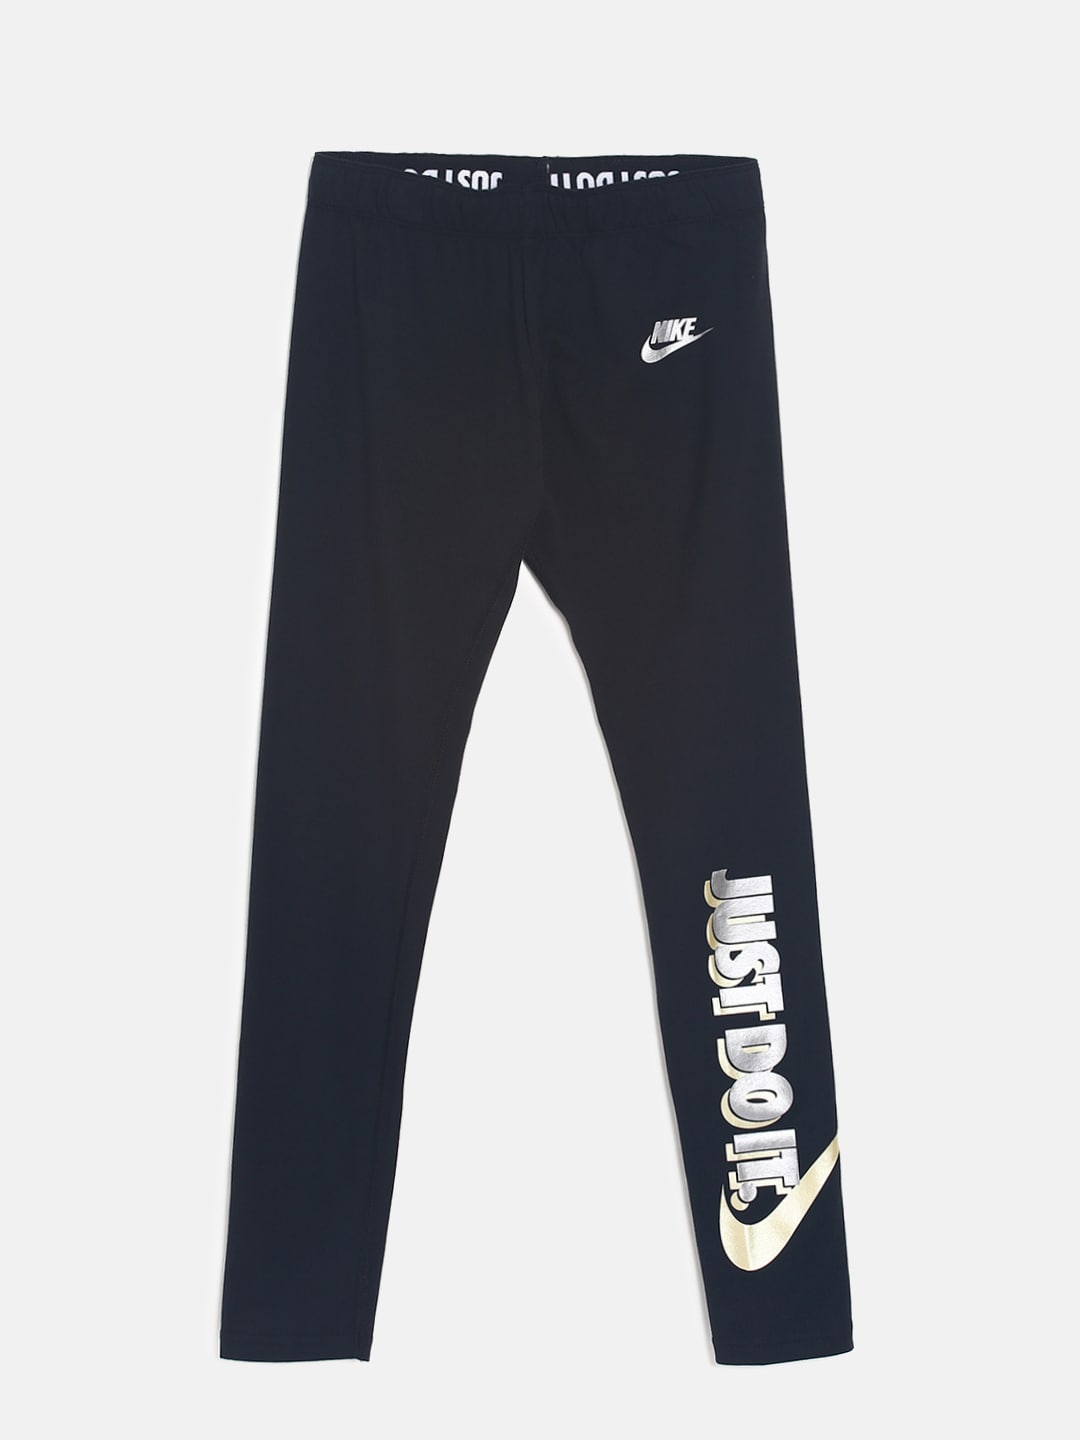 a565d1c5d Nike Innerwear Tights Socks - Buy Nike Innerwear Tights Socks online in  India